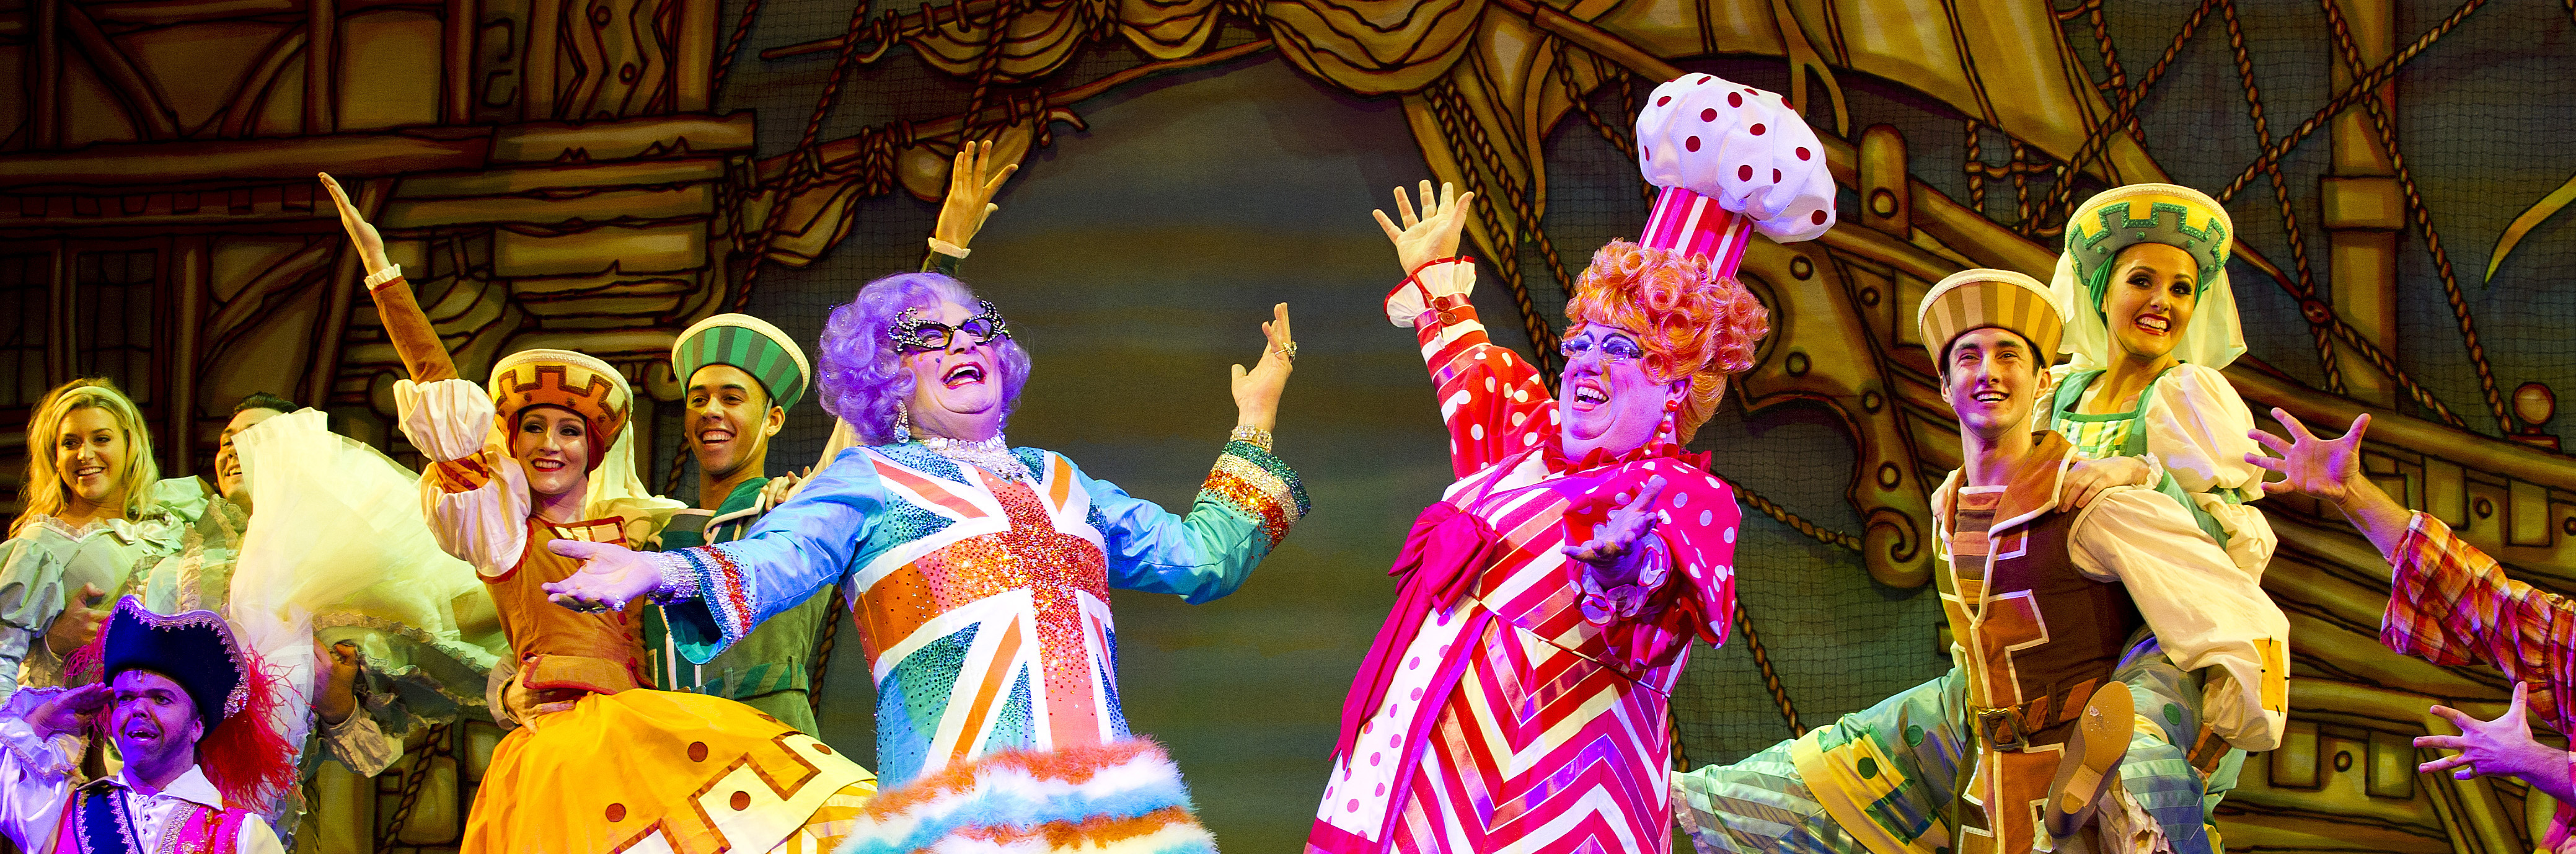 history of panto Michael grade explores the rich history of the very british pantomime dame from the extravagant productions in drury lane in the 19th century to the vintage performances by terry scott and arthur askey, the dame has always been anarchic, witty, vulgar, affectionate and good box office.